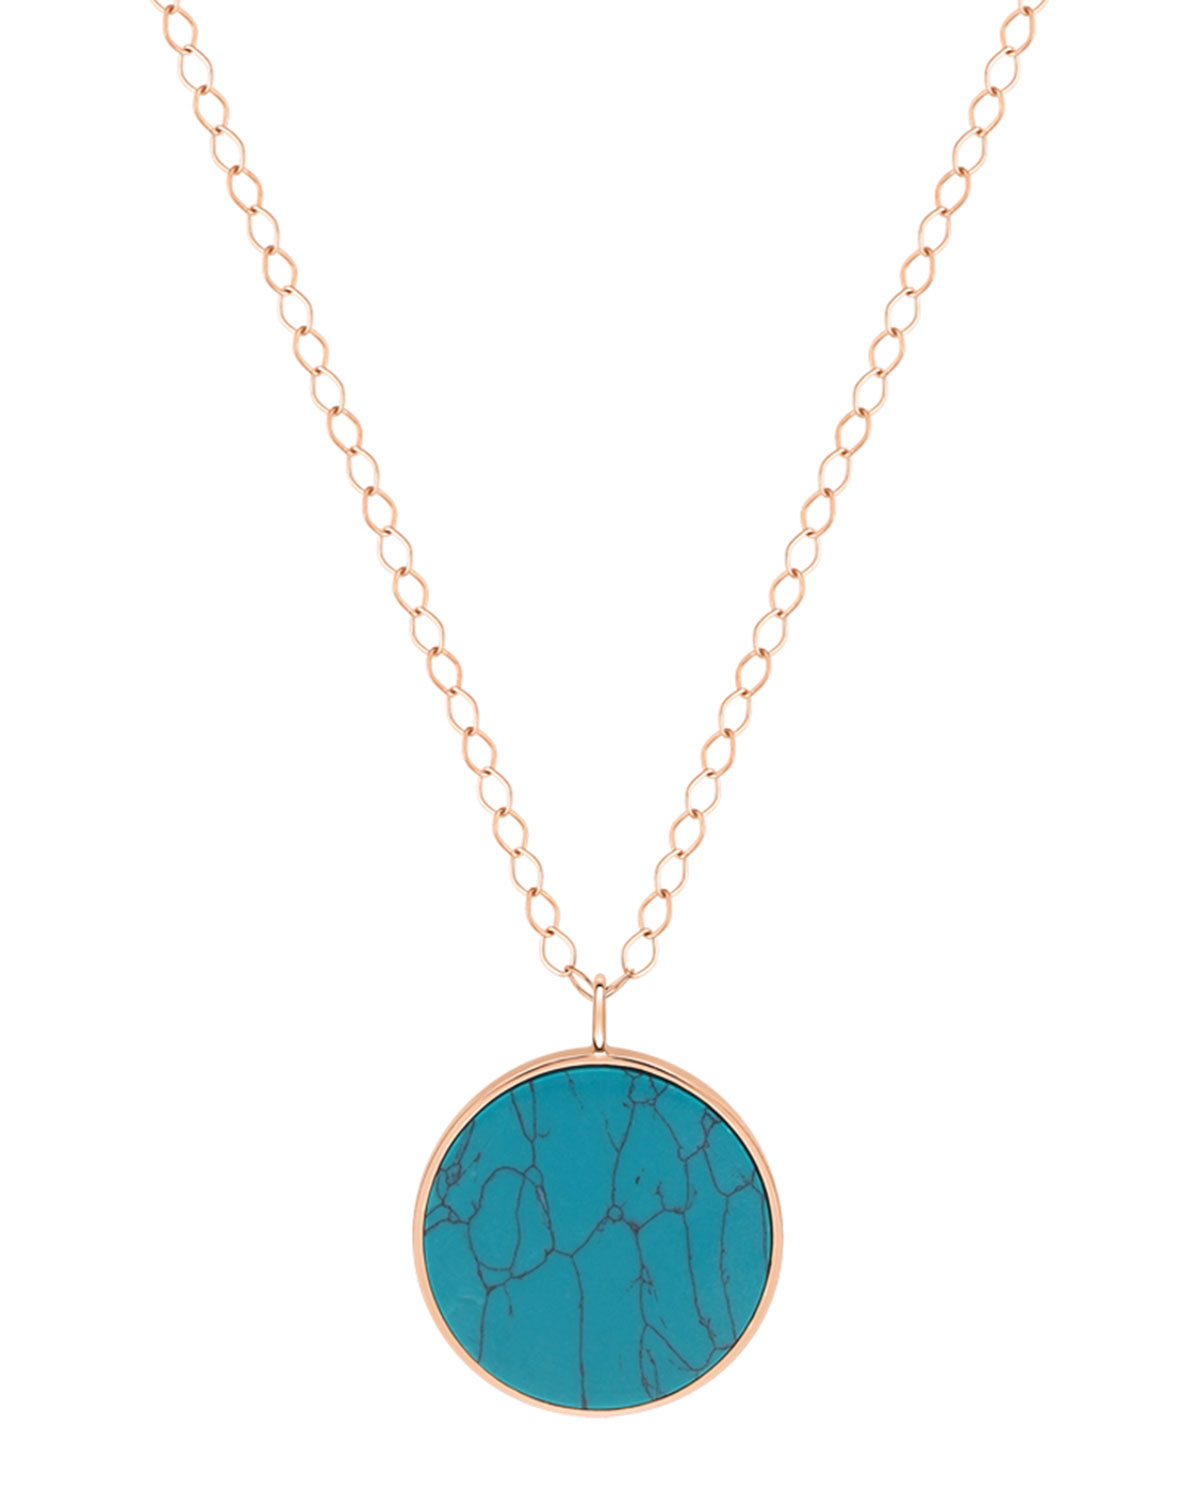 18k Rose Gold Jumbo Ever Disc Necklace in Turquoise